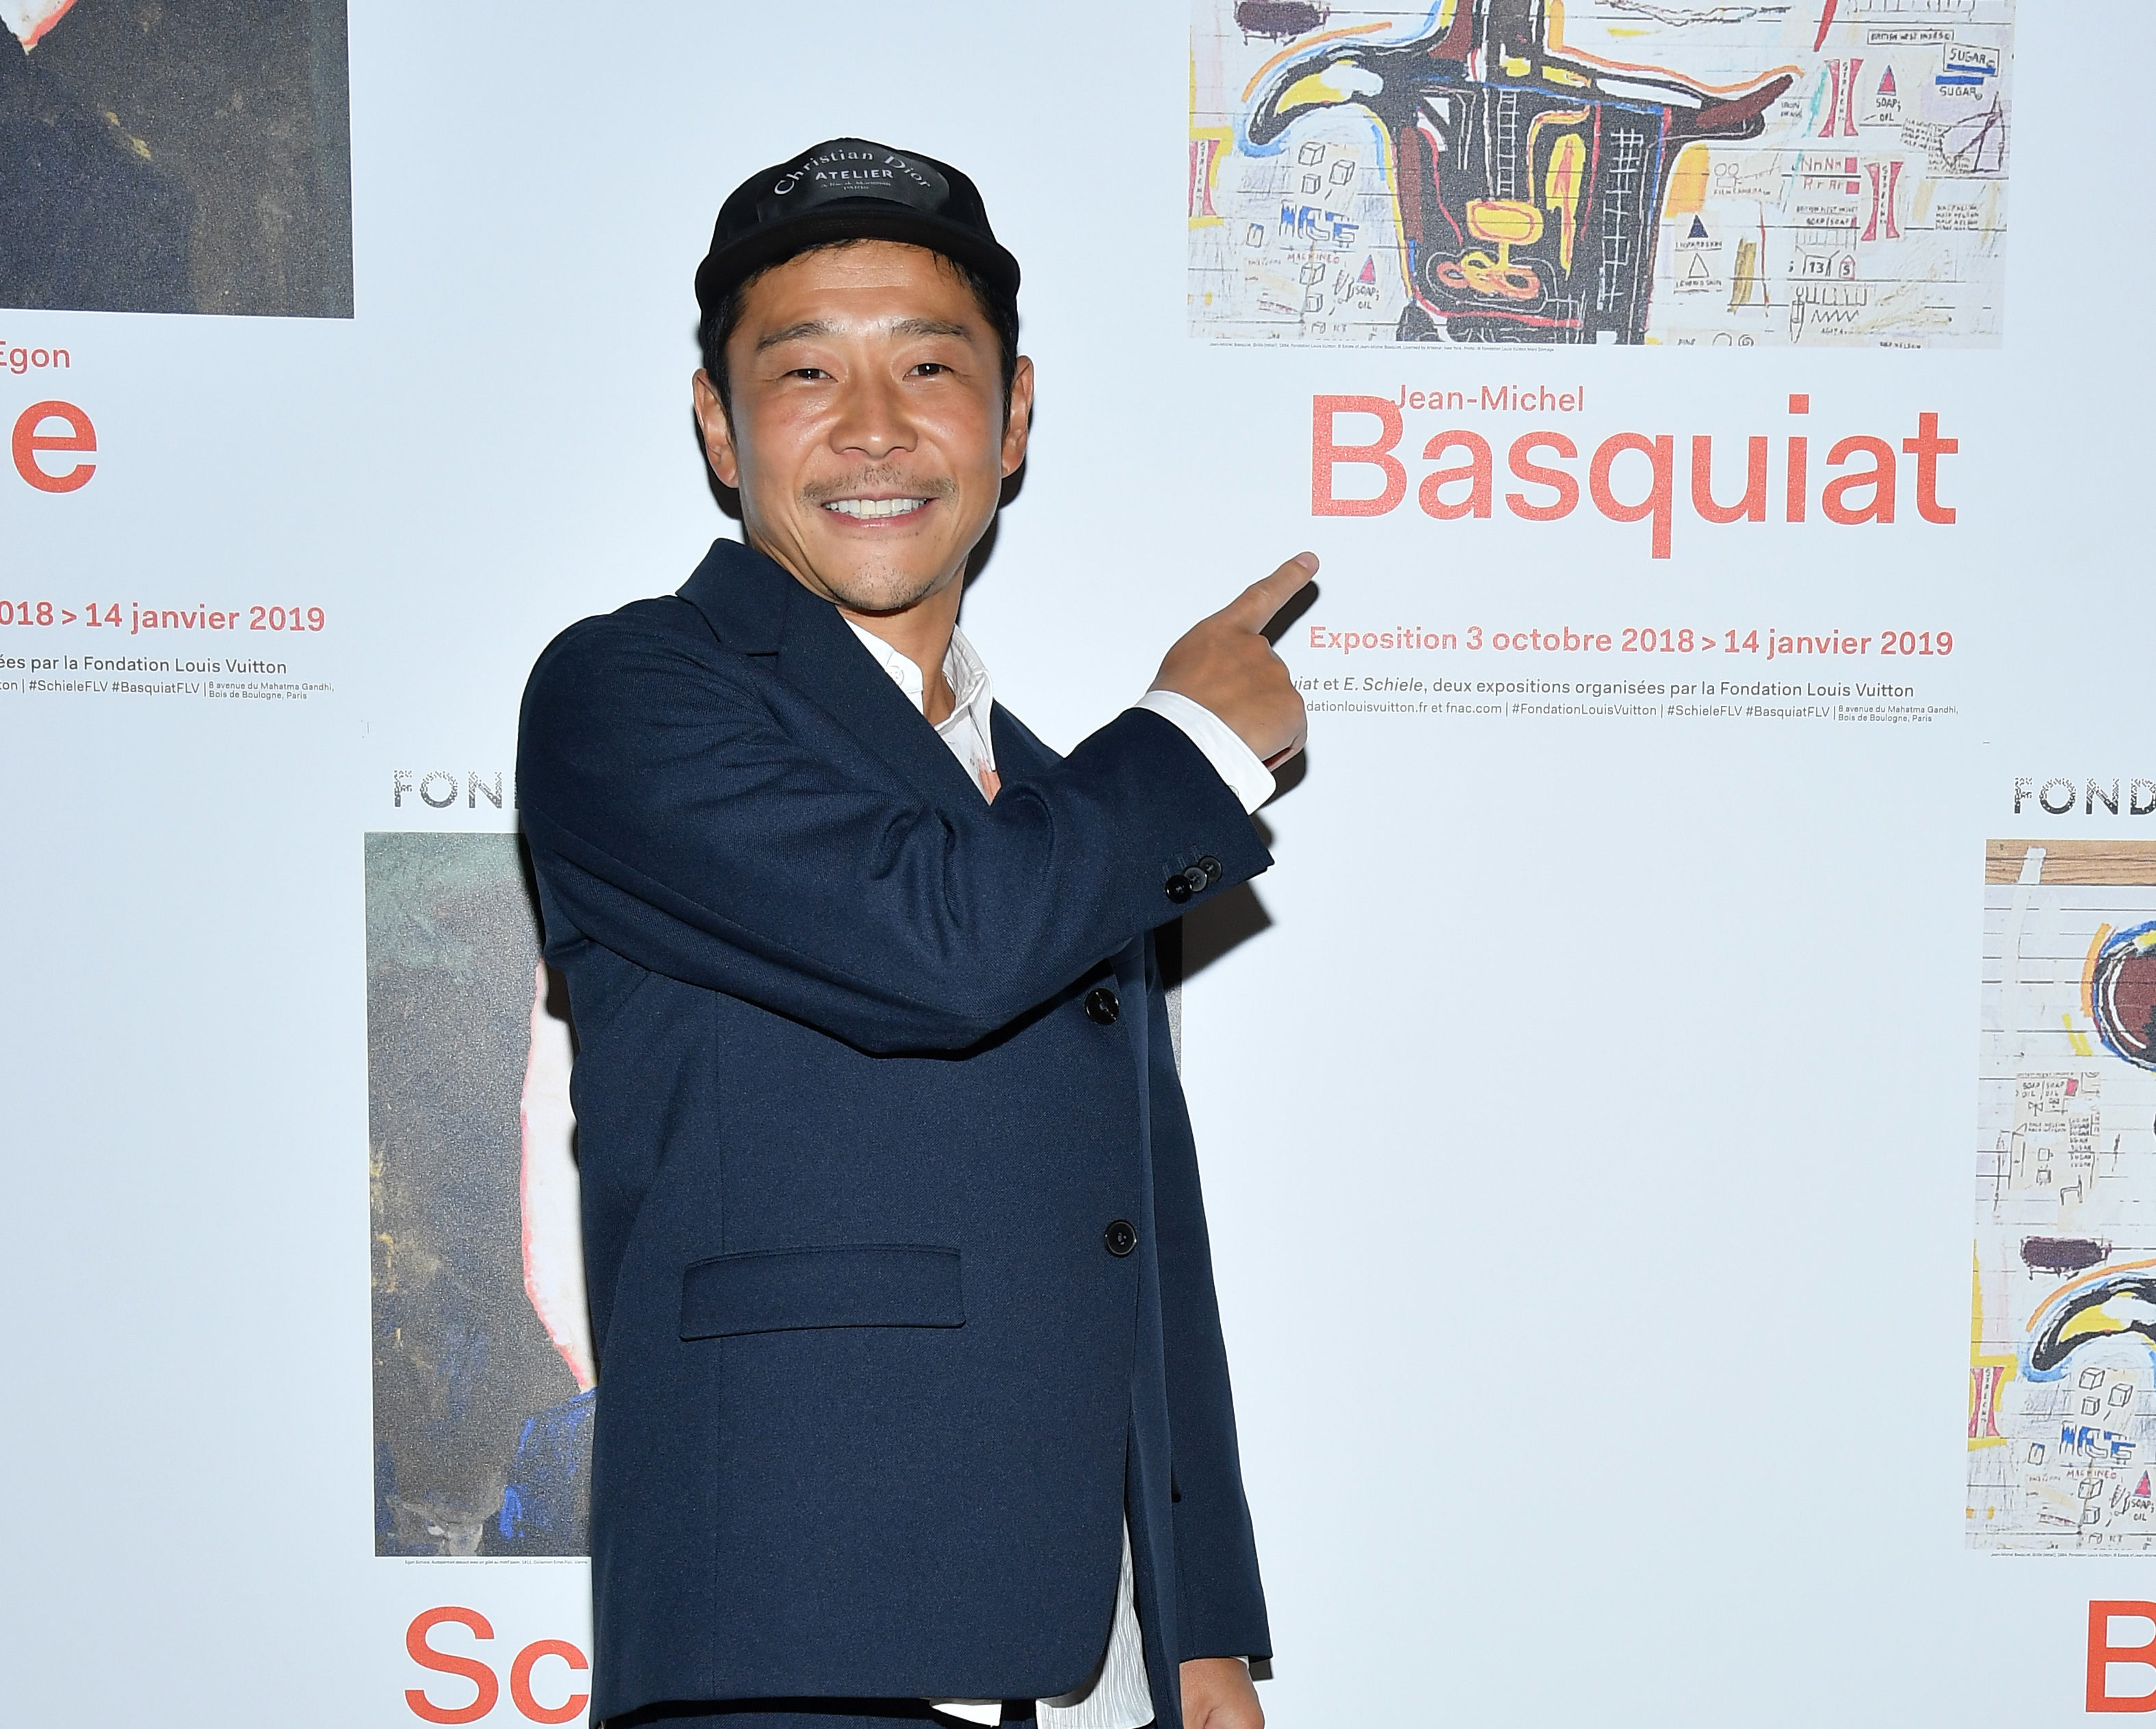 Japanese billionaire Yusaku Maezawa is giving away $9 million to 1,000 of his Twitter followers for a social experiment.